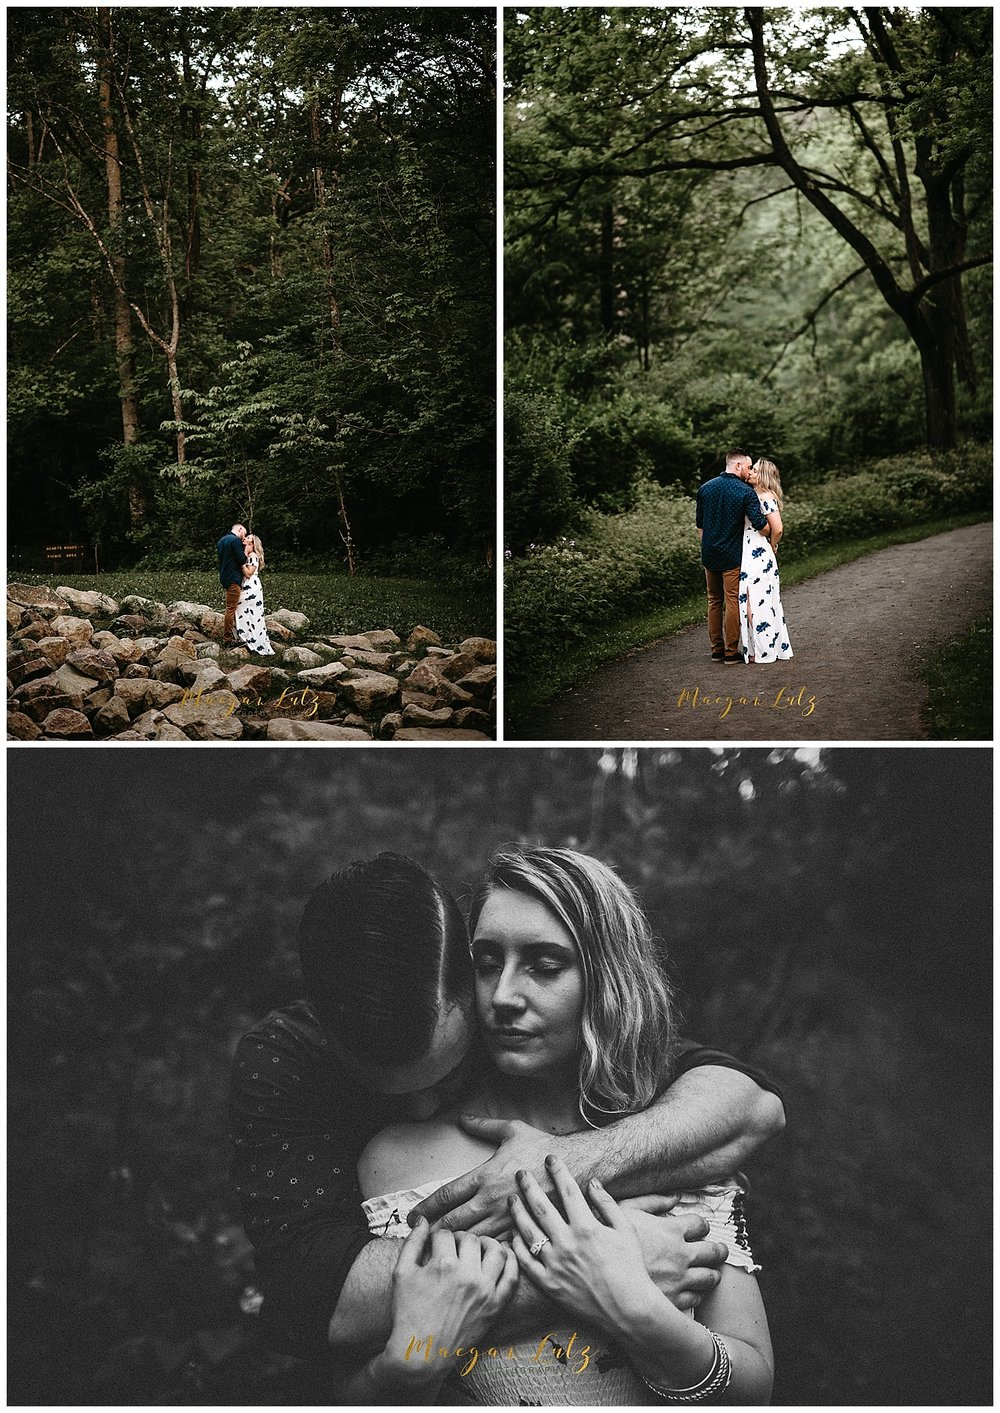 NEPA-wedding-engagement-photographer-Jacobsburg-state-park-Easton-PA_0052.jpg